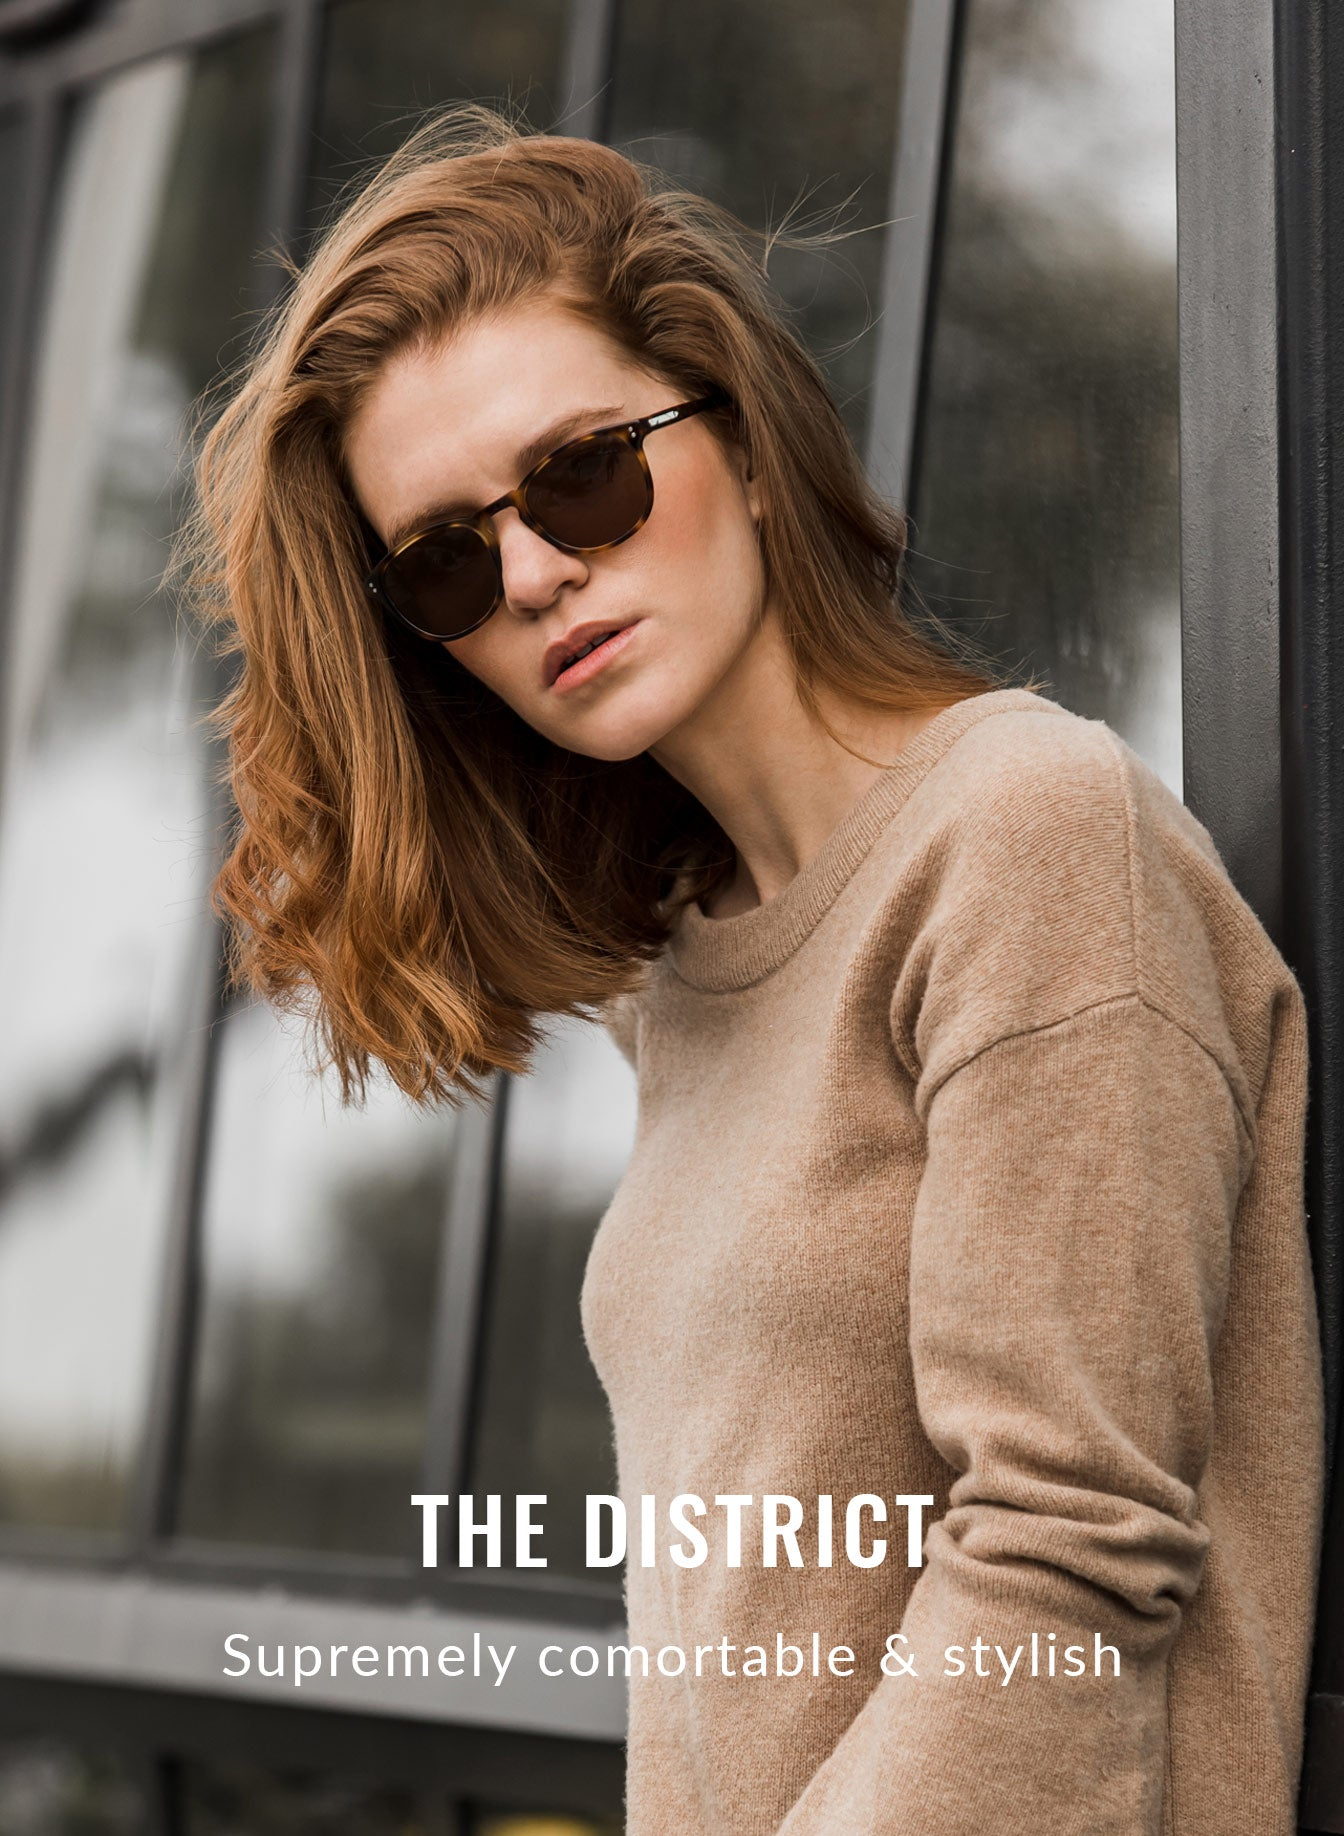 Woman in tan sweater leaning against wall in sunglasses